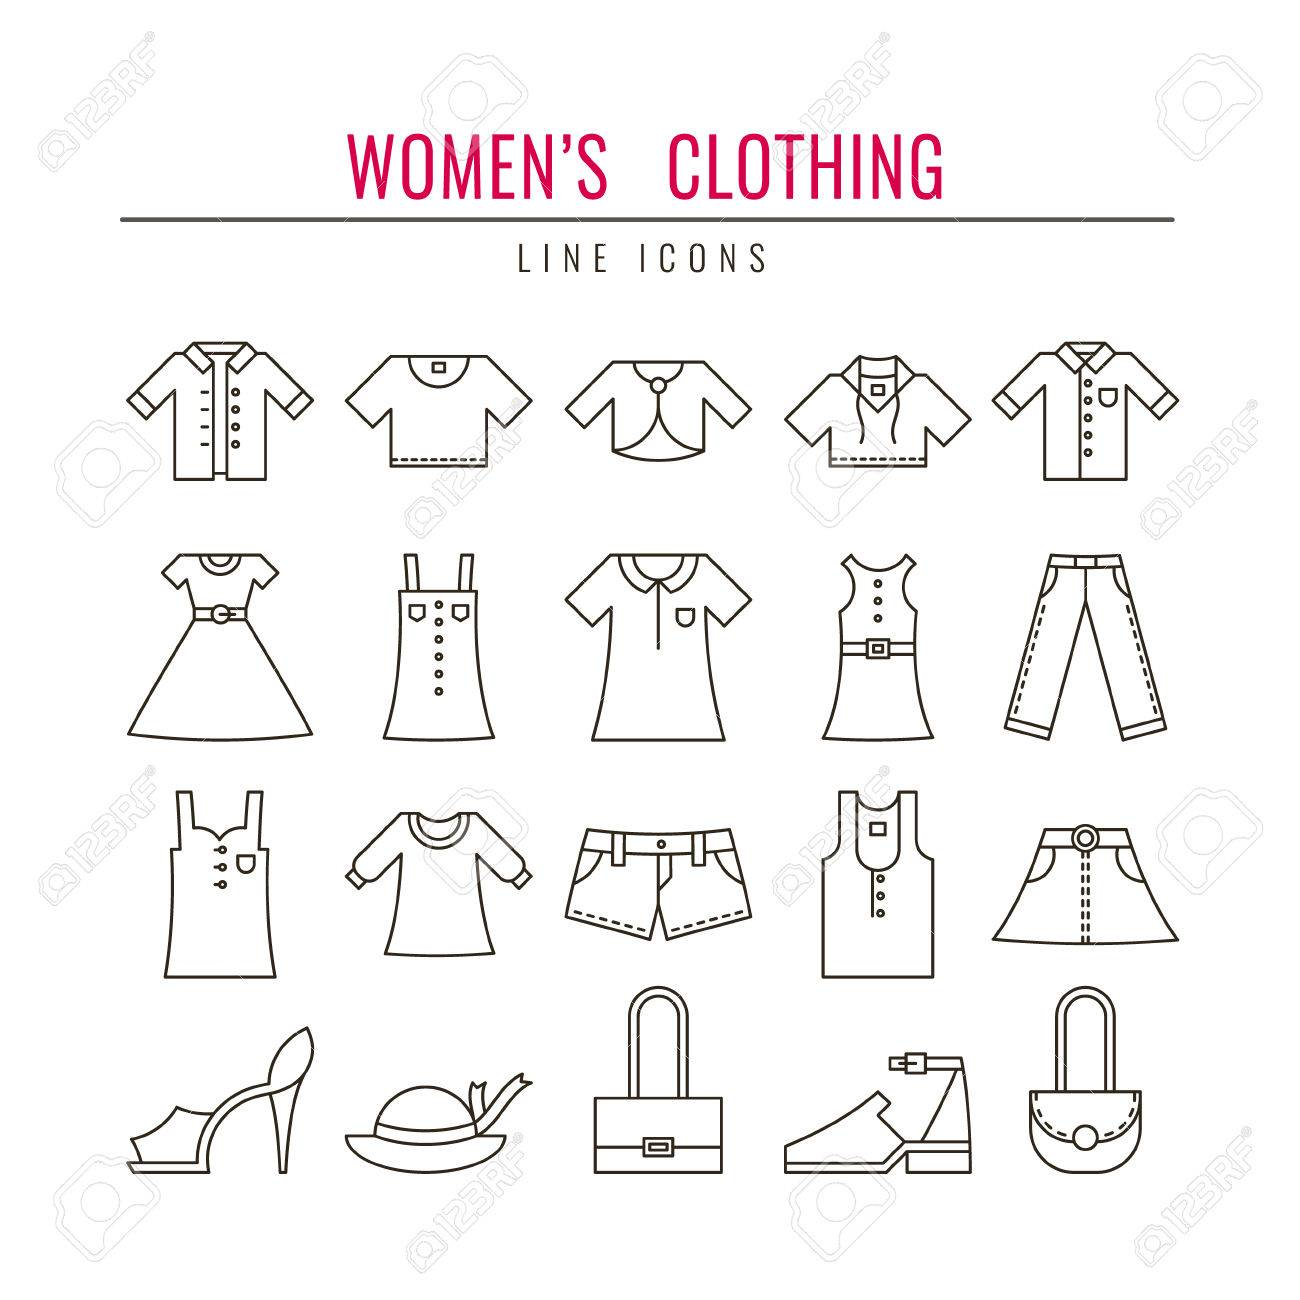 women s clothing outline icons set design elements for websites